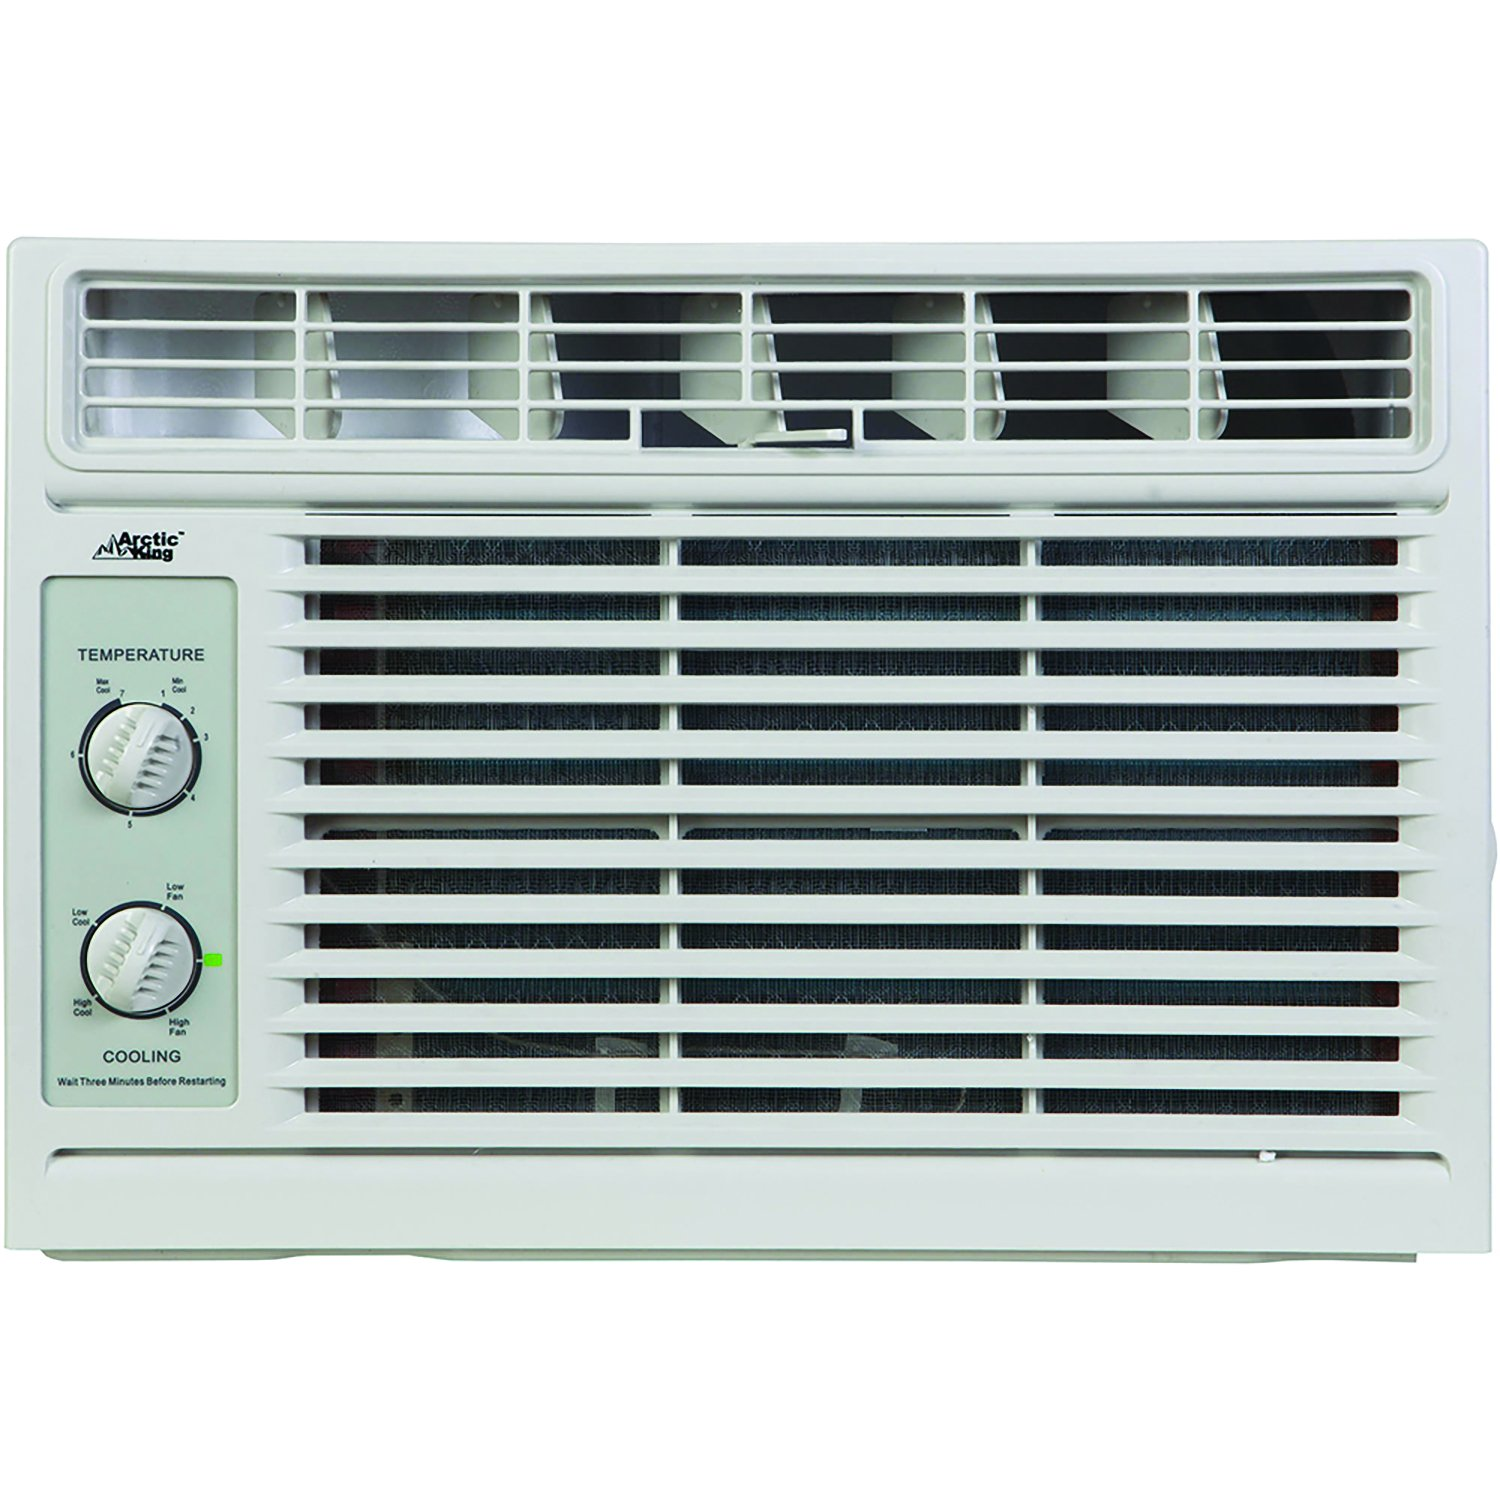 ARCTIC Wind King 5,000 BTU Window Air Conditioner with Mechanical Controls Midea AKW05CM71-A